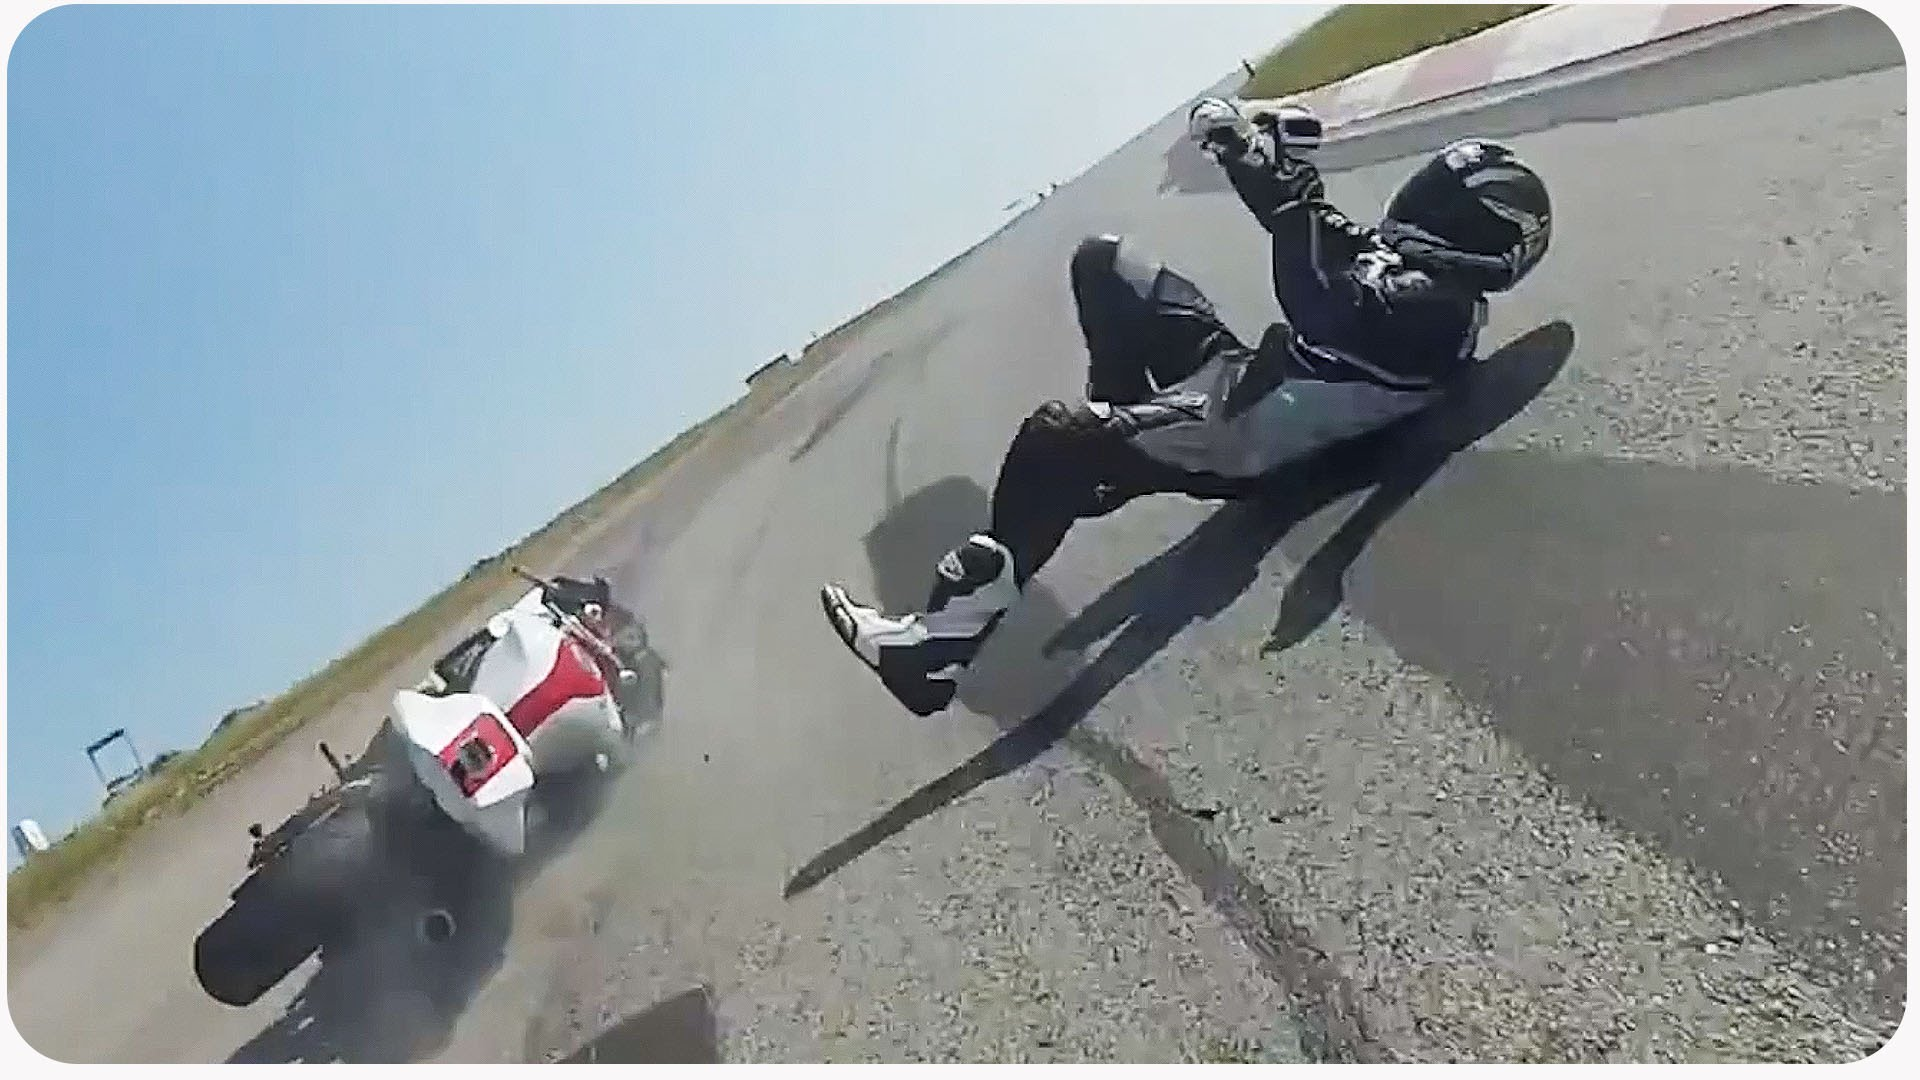 how to get into track racing motorcycle